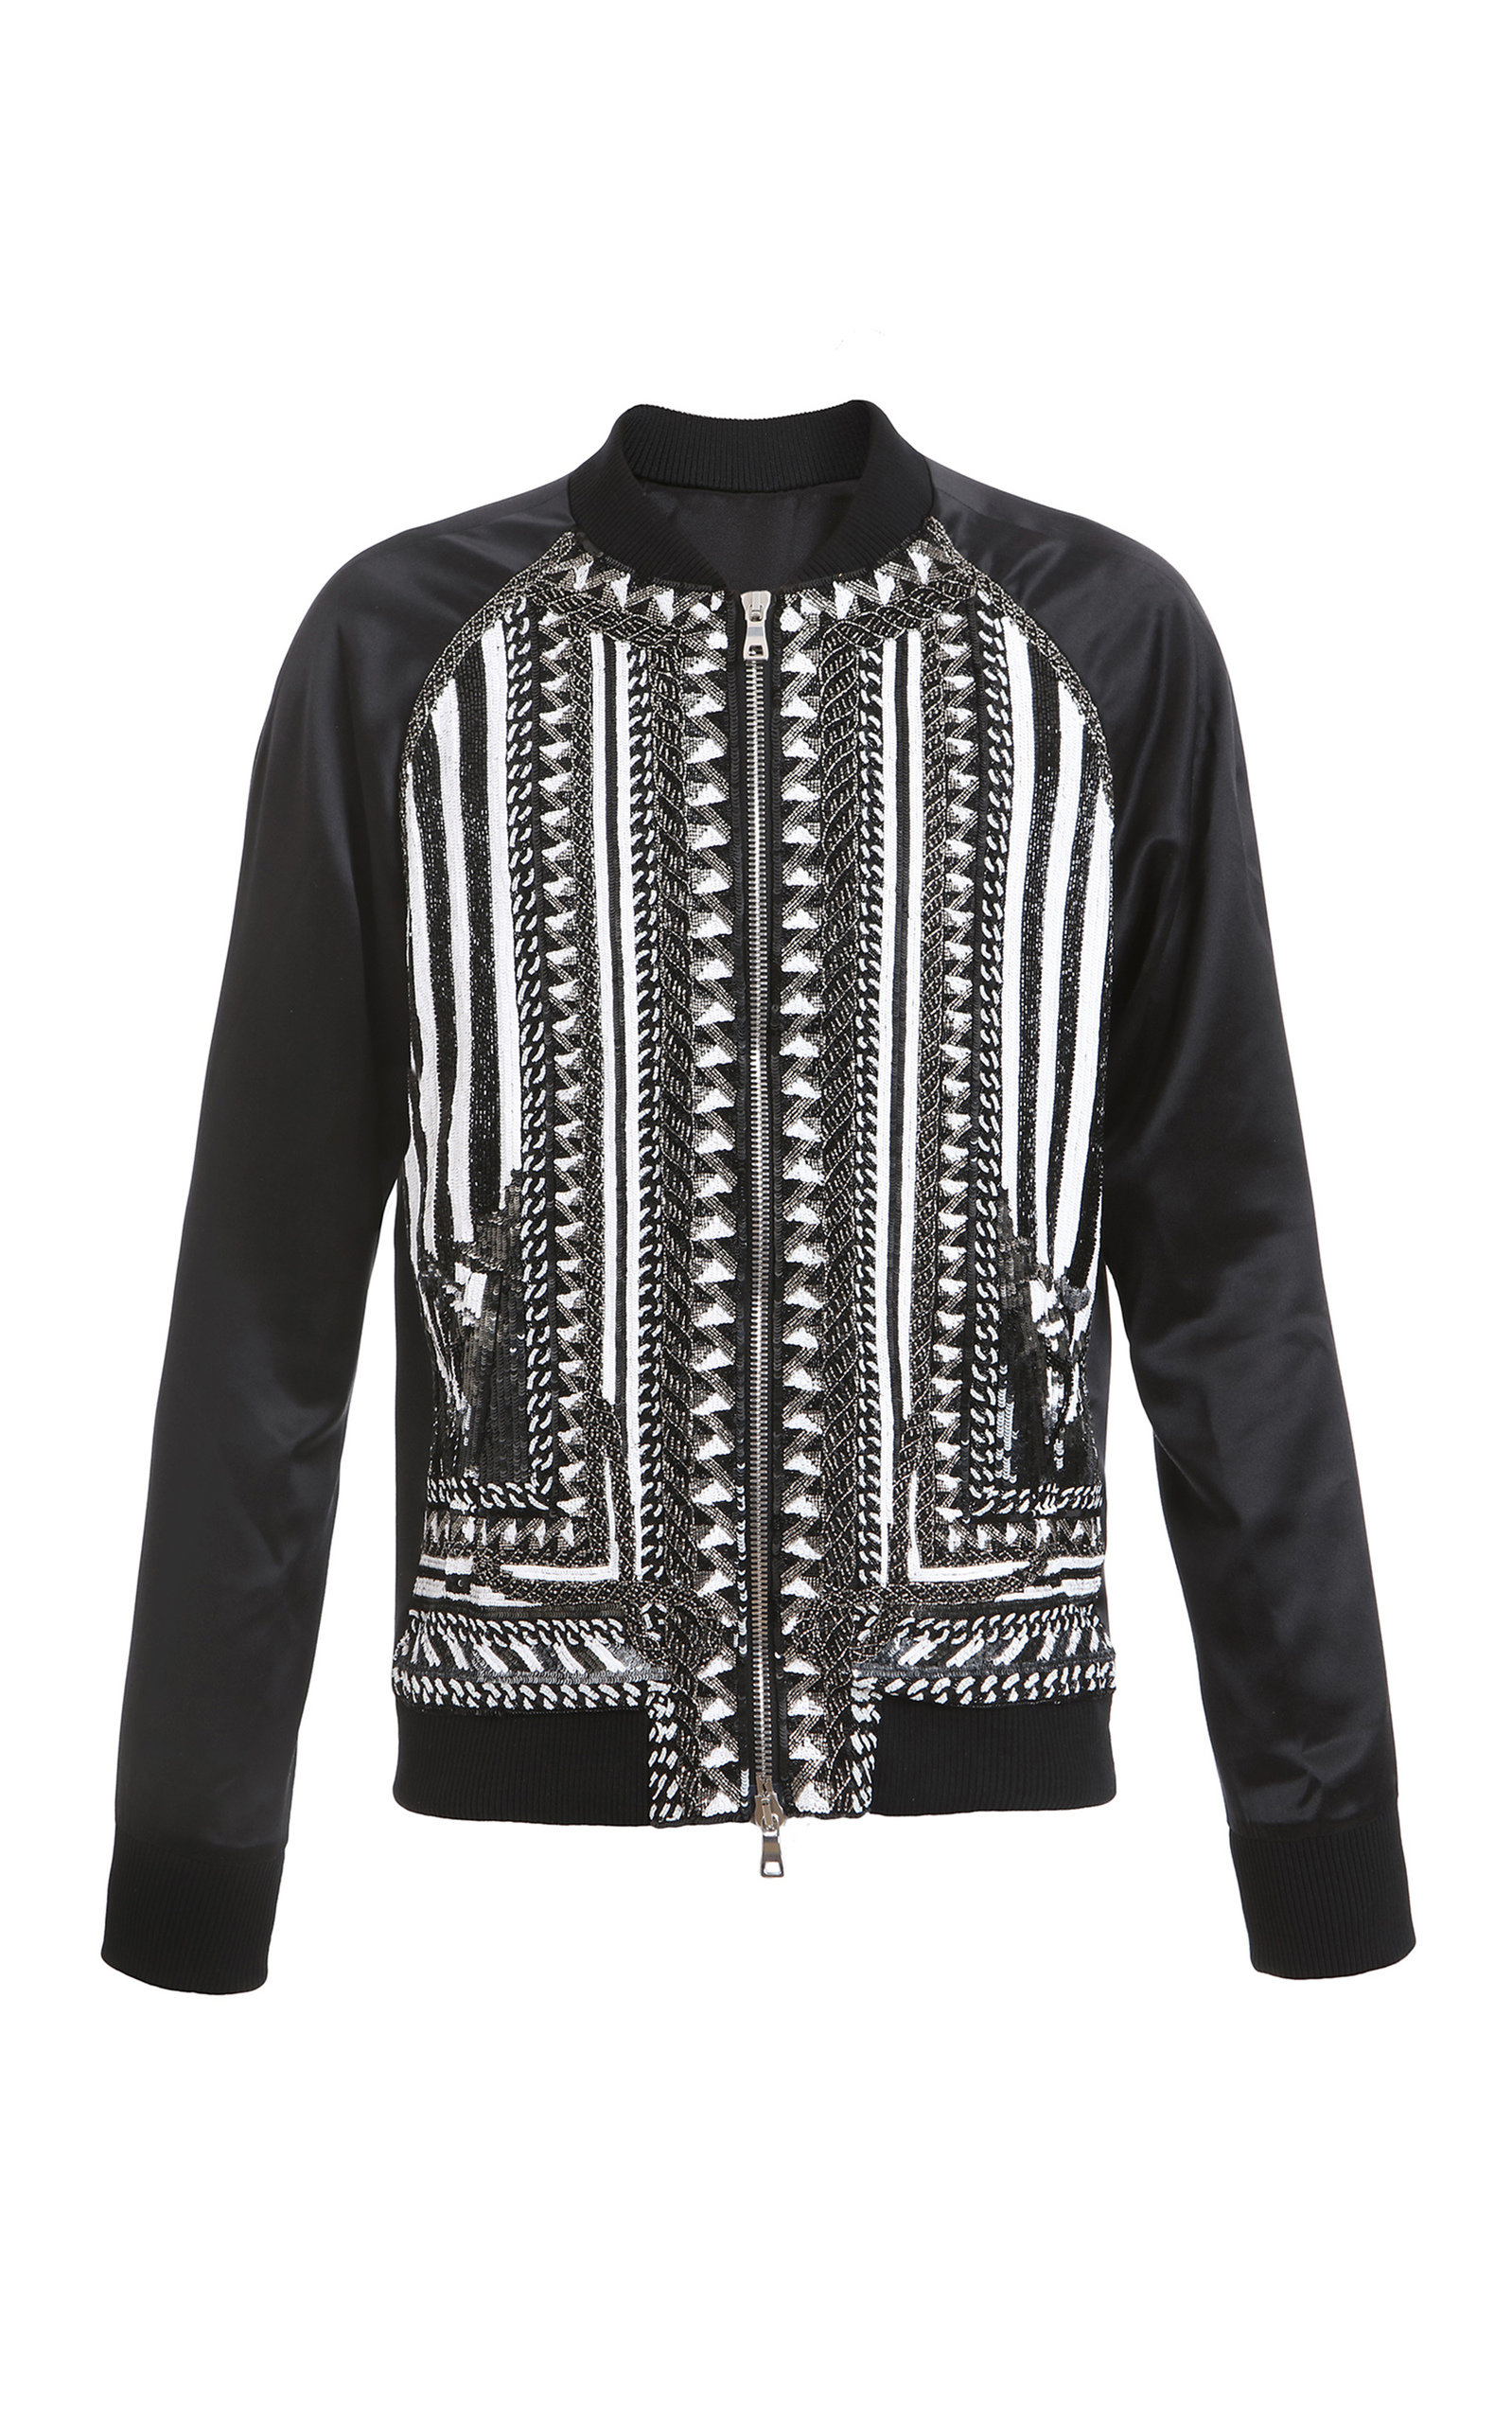 472d01d12 Embroidered Bomber Jacket